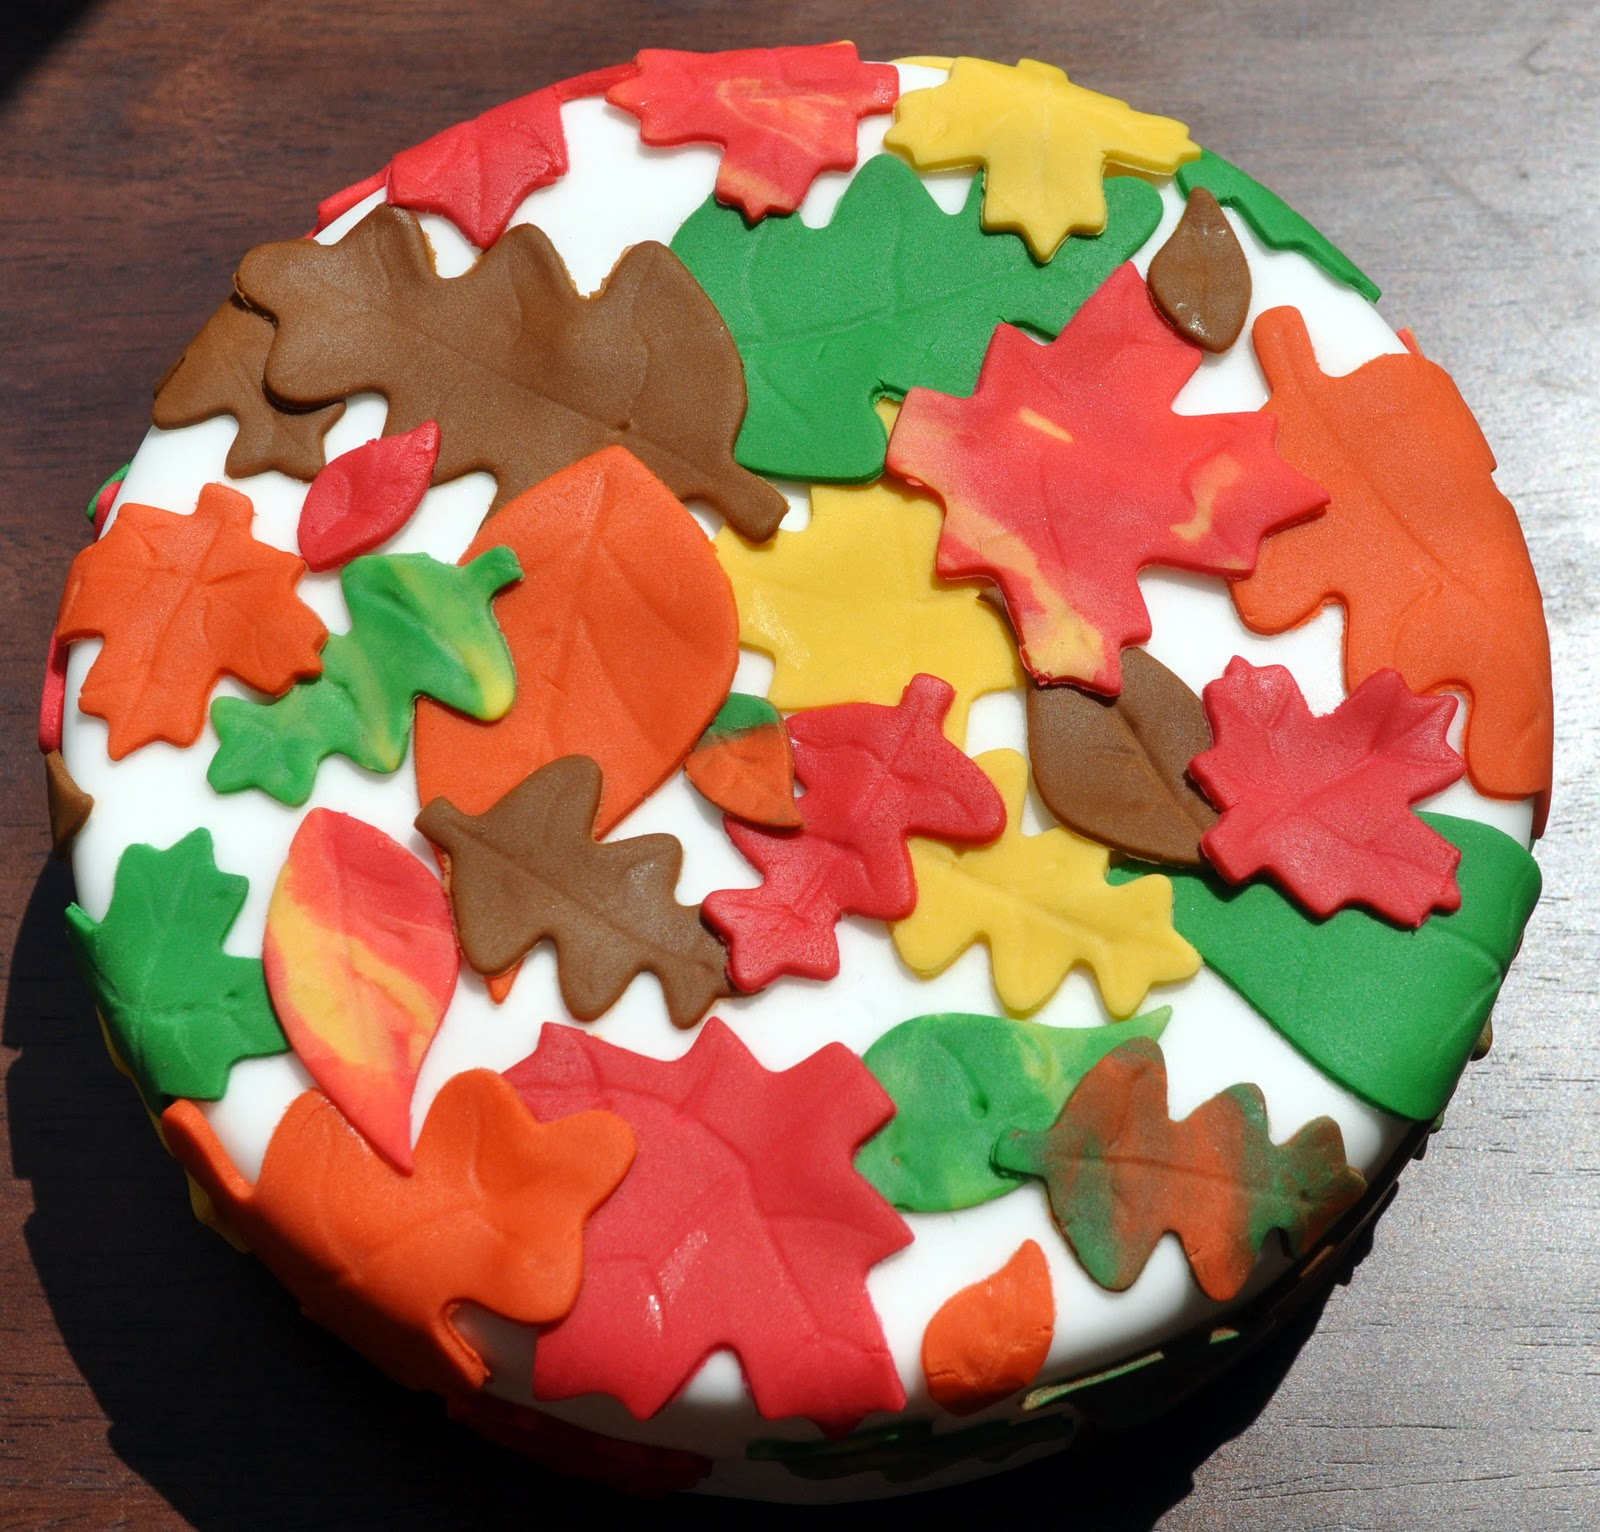 Cake Decorating Leaves : Beki Cook s Cake Blog: Fall Cake Decorating Classes -- Don ...